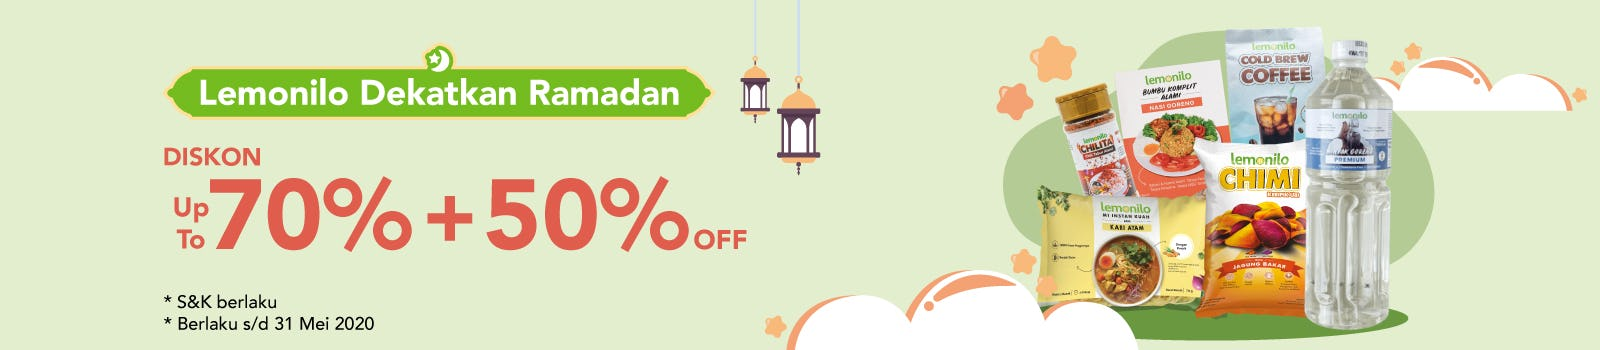 #DekatkanRamadan Up To 70% + 50% OFF